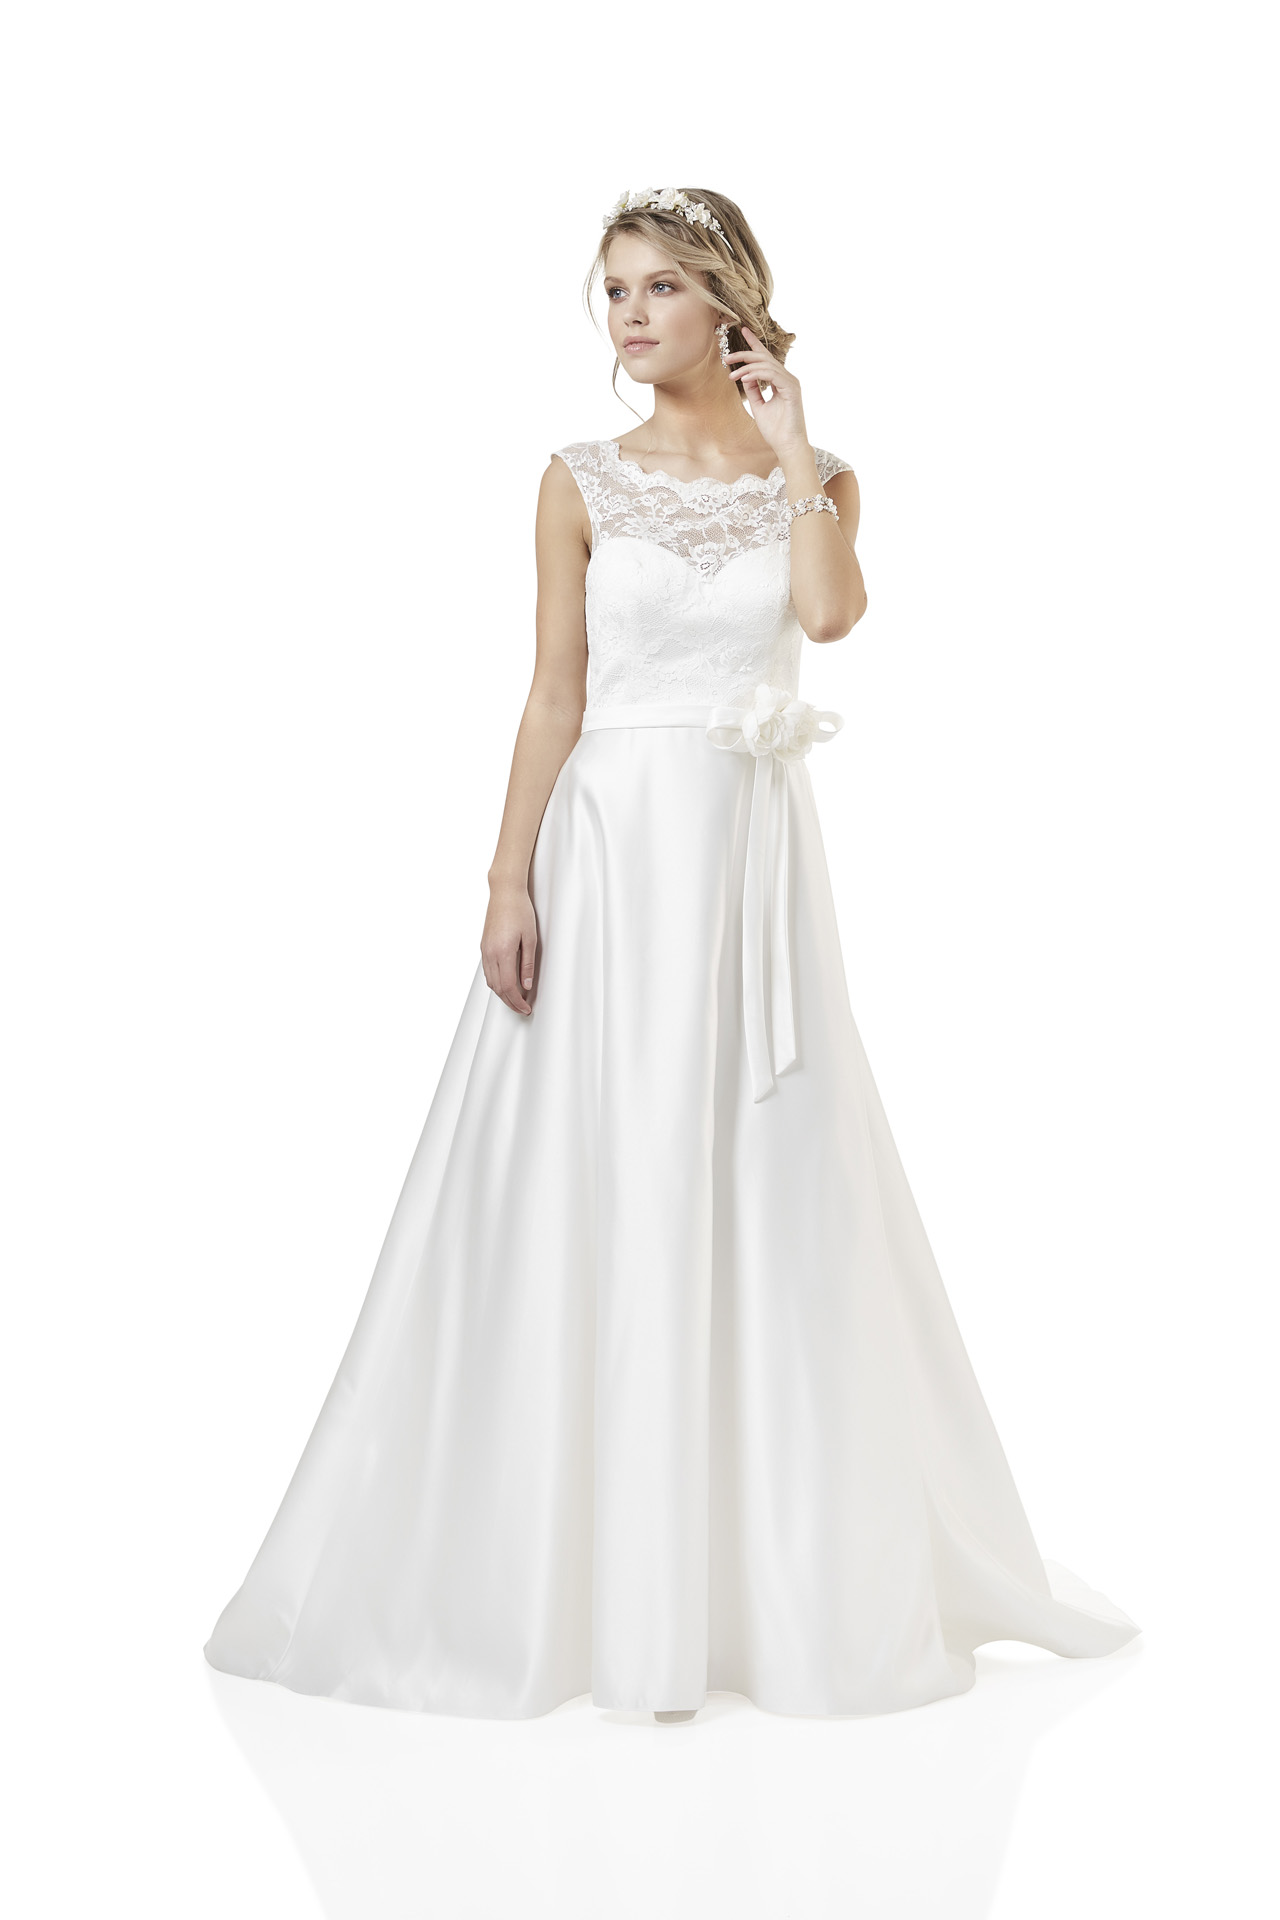 Brautkleid Weise Essentials Kollektion 2018 Modell 334332